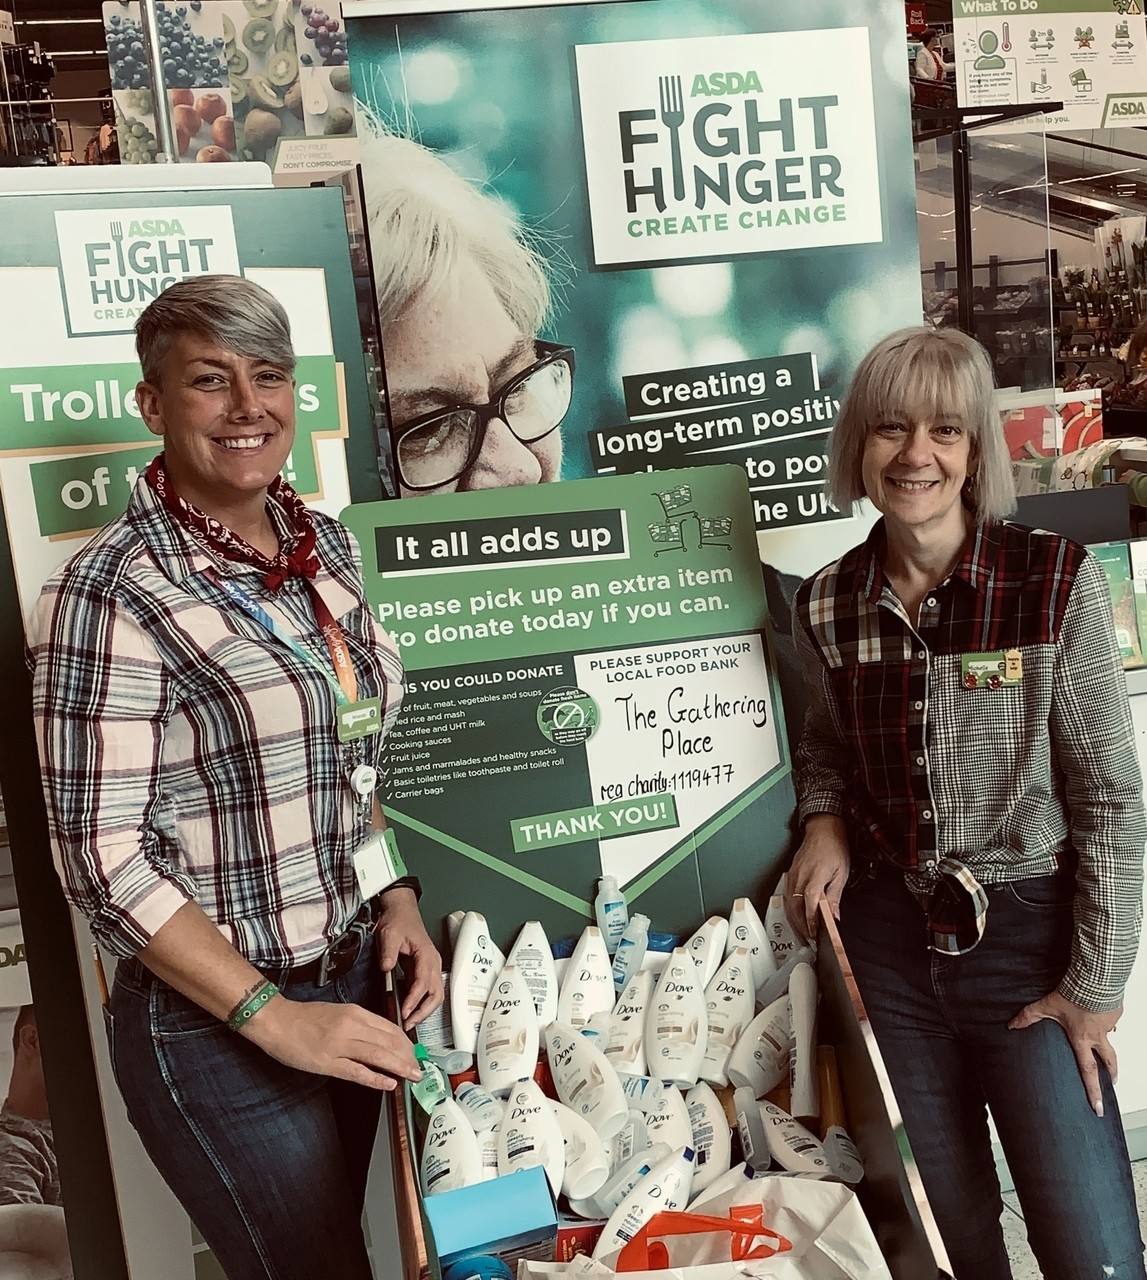 Thank you for supporting our local food bank | Asda Halifax